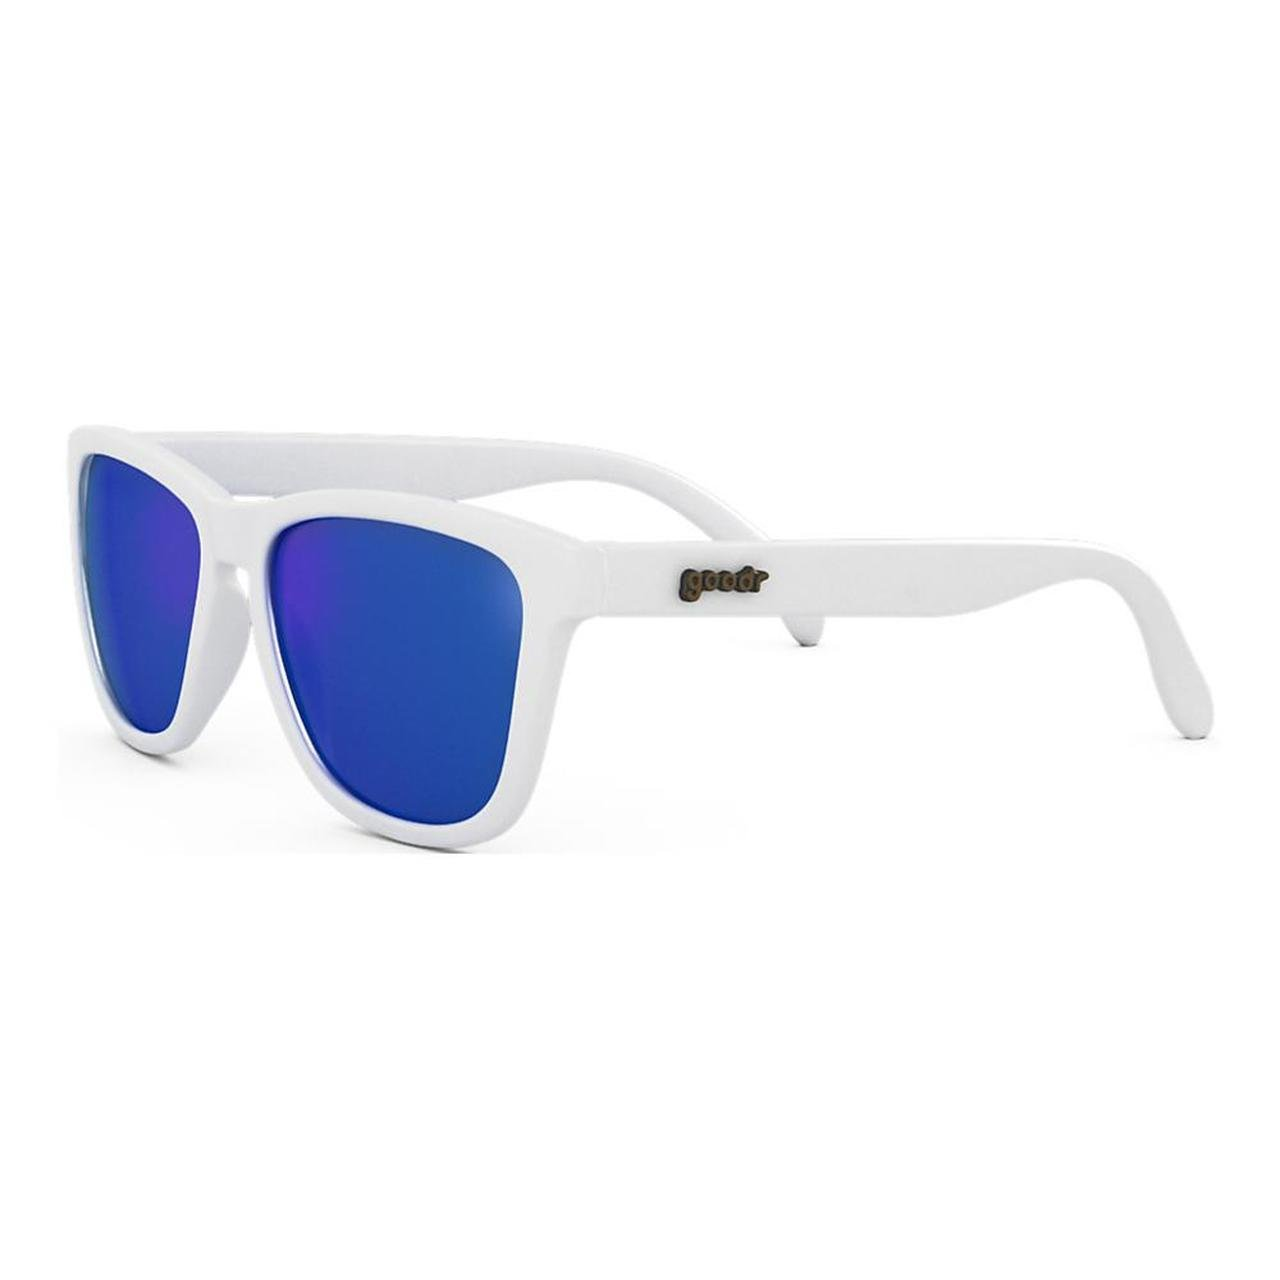 Goodr Non-Slip Polarized Sunglasses - Iced by Yetis